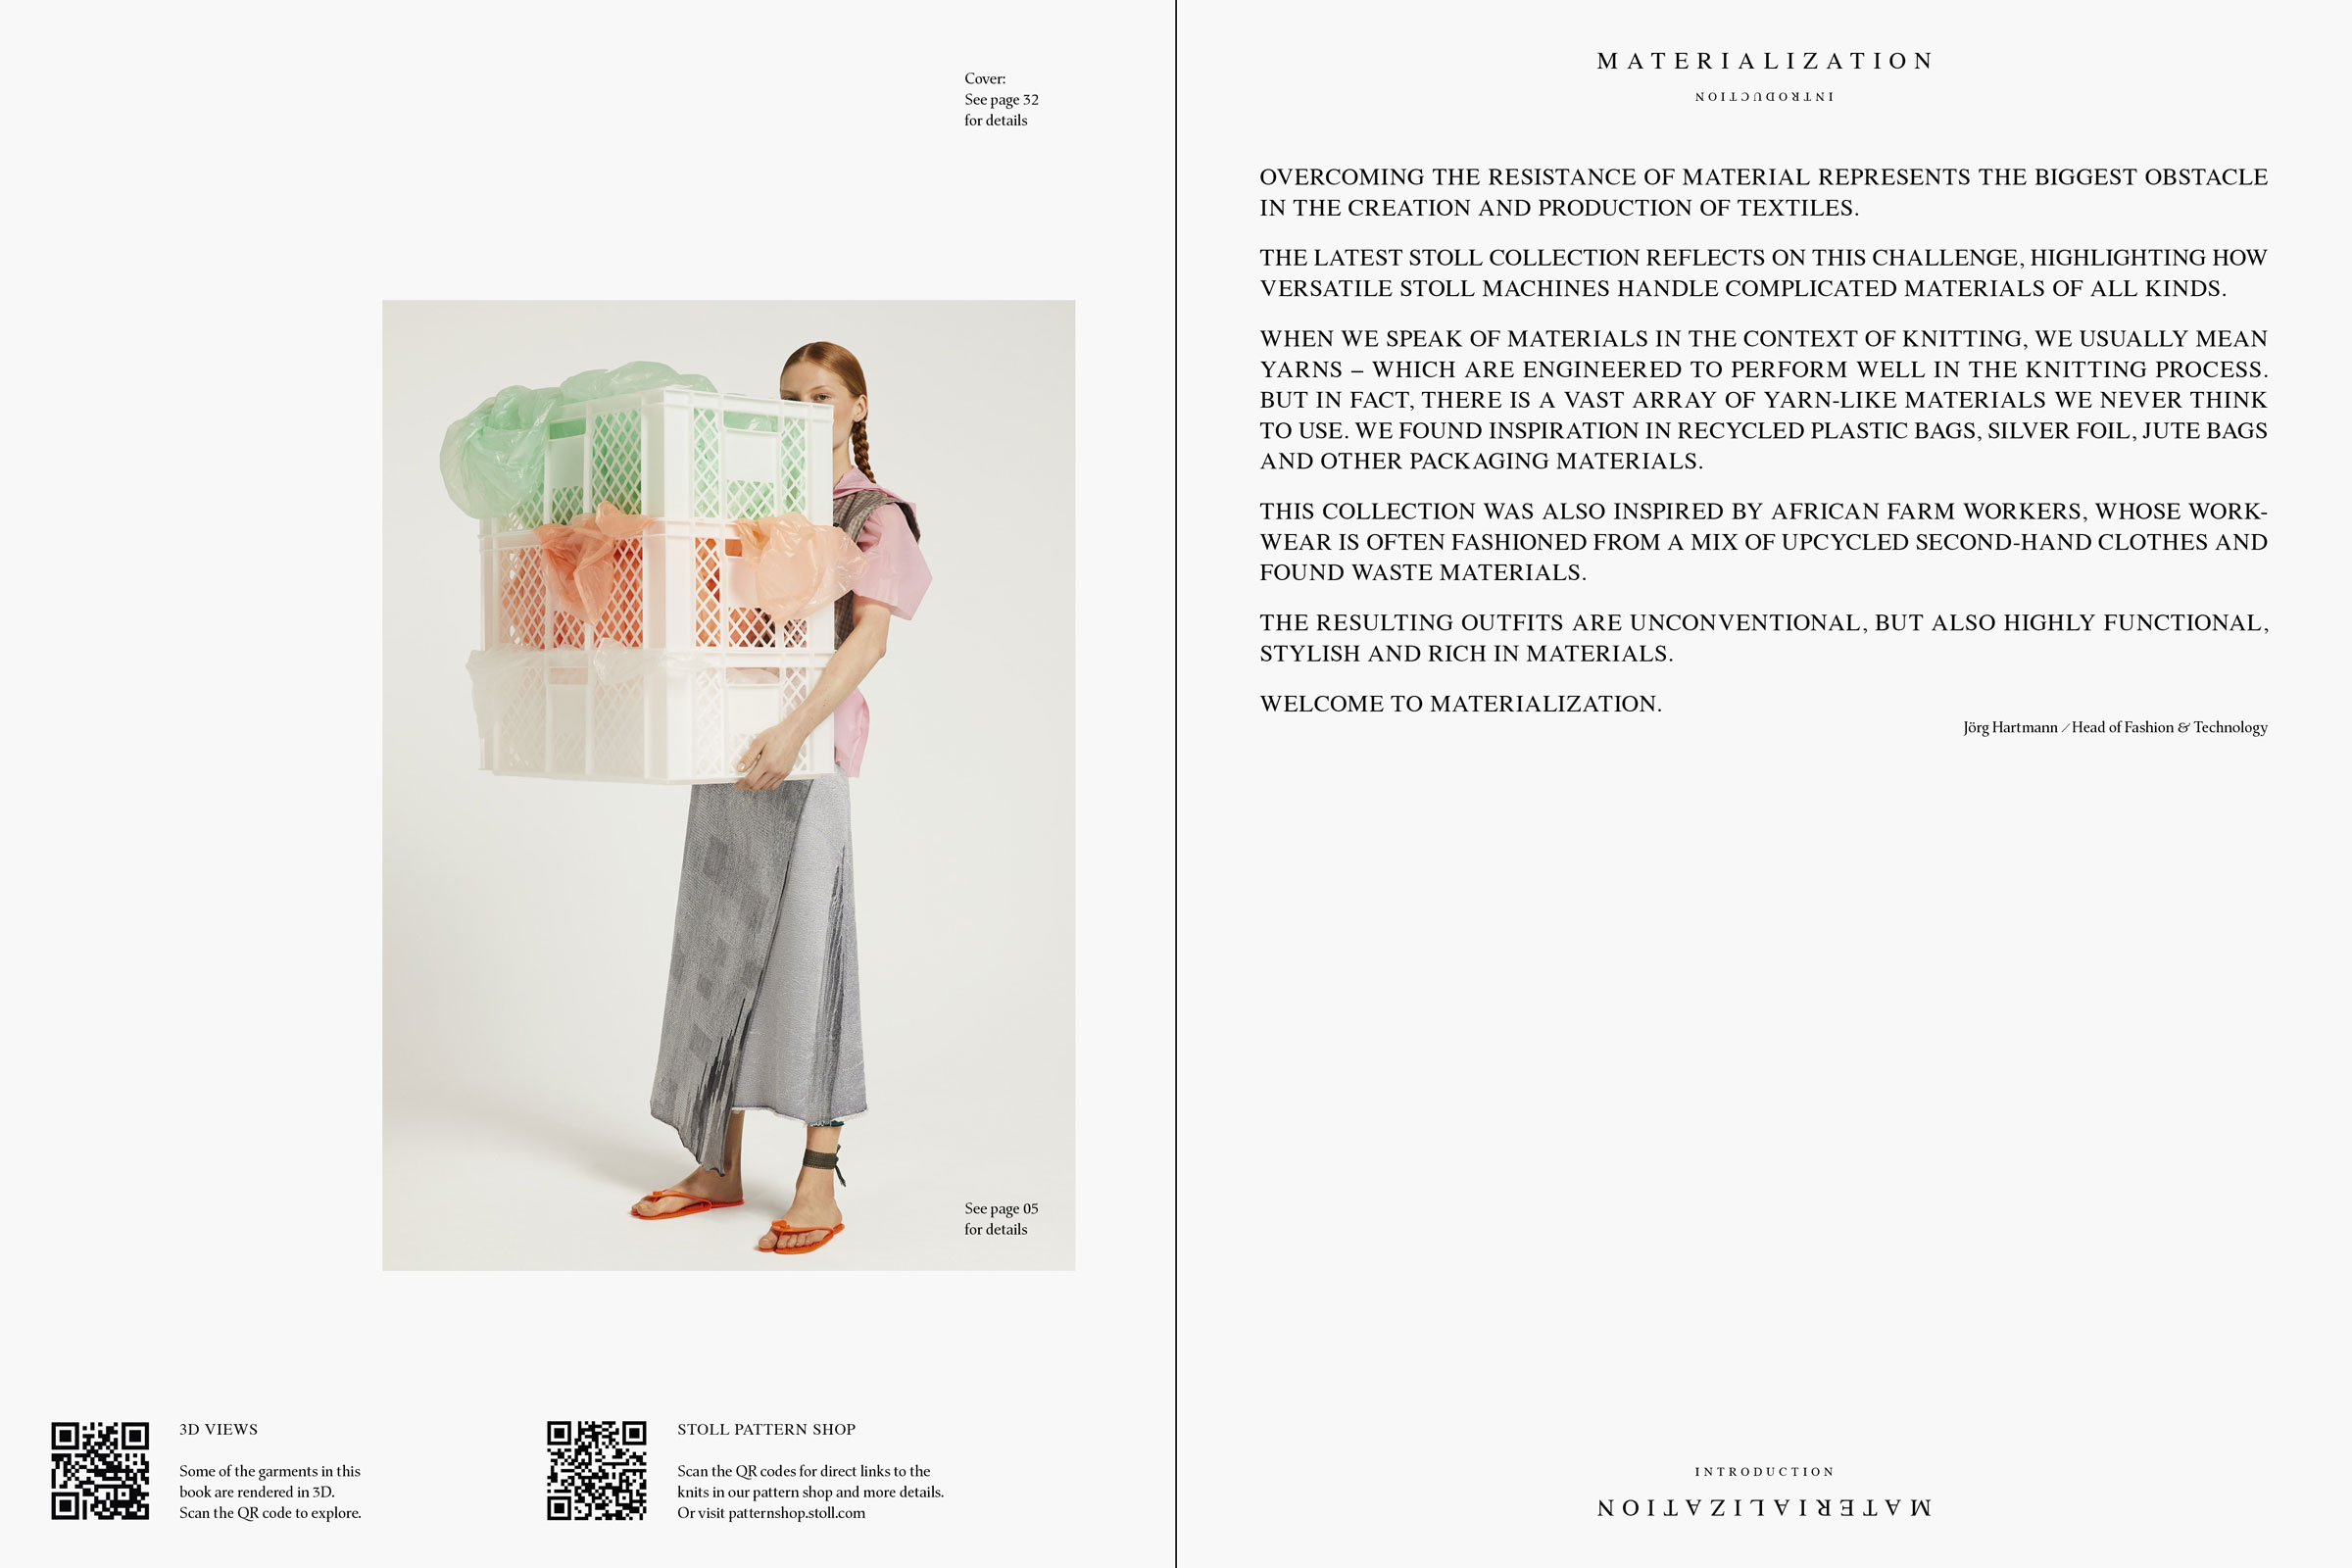 OLIVER MOORE Art Direction and Graphic Design  Idastrasse 17 13156 Berlin  studio@olivermoore.de +49 (0)30 40368971 STOLL Materialization